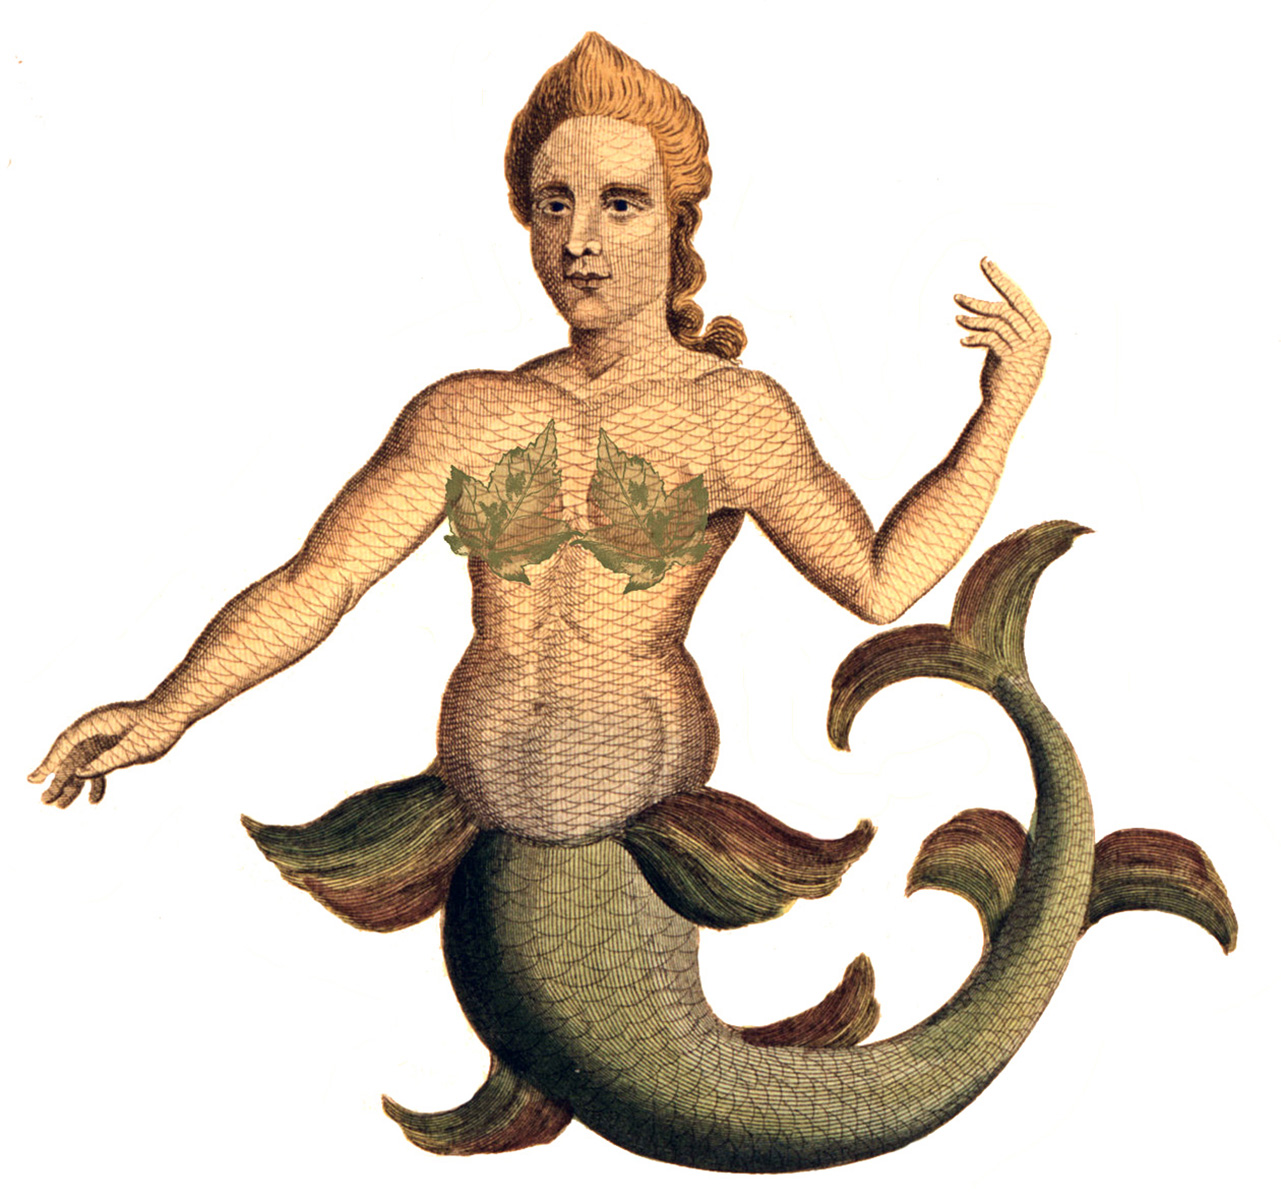 Sea Hag Mermaid Image